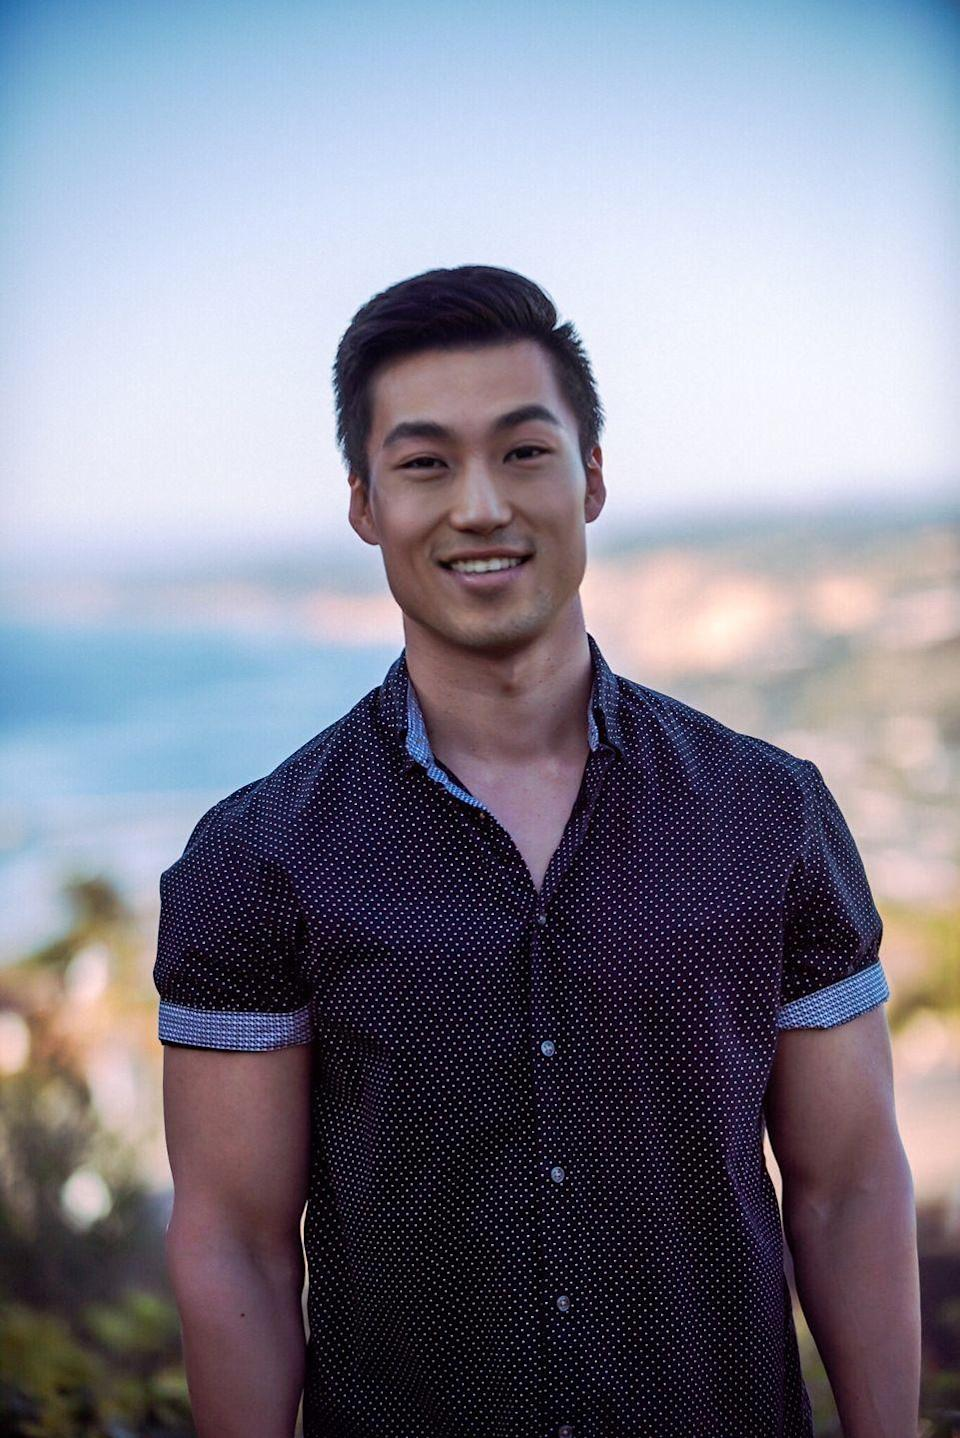 """<p>Bao is one of the oldest contestants on this season, but he definitely doesn't look it. He works in real estate and includes """"fitness, basketball, boxing, nutrition, animals"""" among his interests on his Insta bio.</p><p><strong>Age: 36</strong></p><p><strong>Hometown: Concord, NH</strong></p><p><strong>Instagram: <a href=""""https://www.instagram.com/baochowski/"""" rel=""""nofollow noopener"""" target=""""_blank"""" data-ylk=""""slk:@baochowski"""" class=""""link rapid-noclick-resp"""">@baochowski</a></strong></p>"""